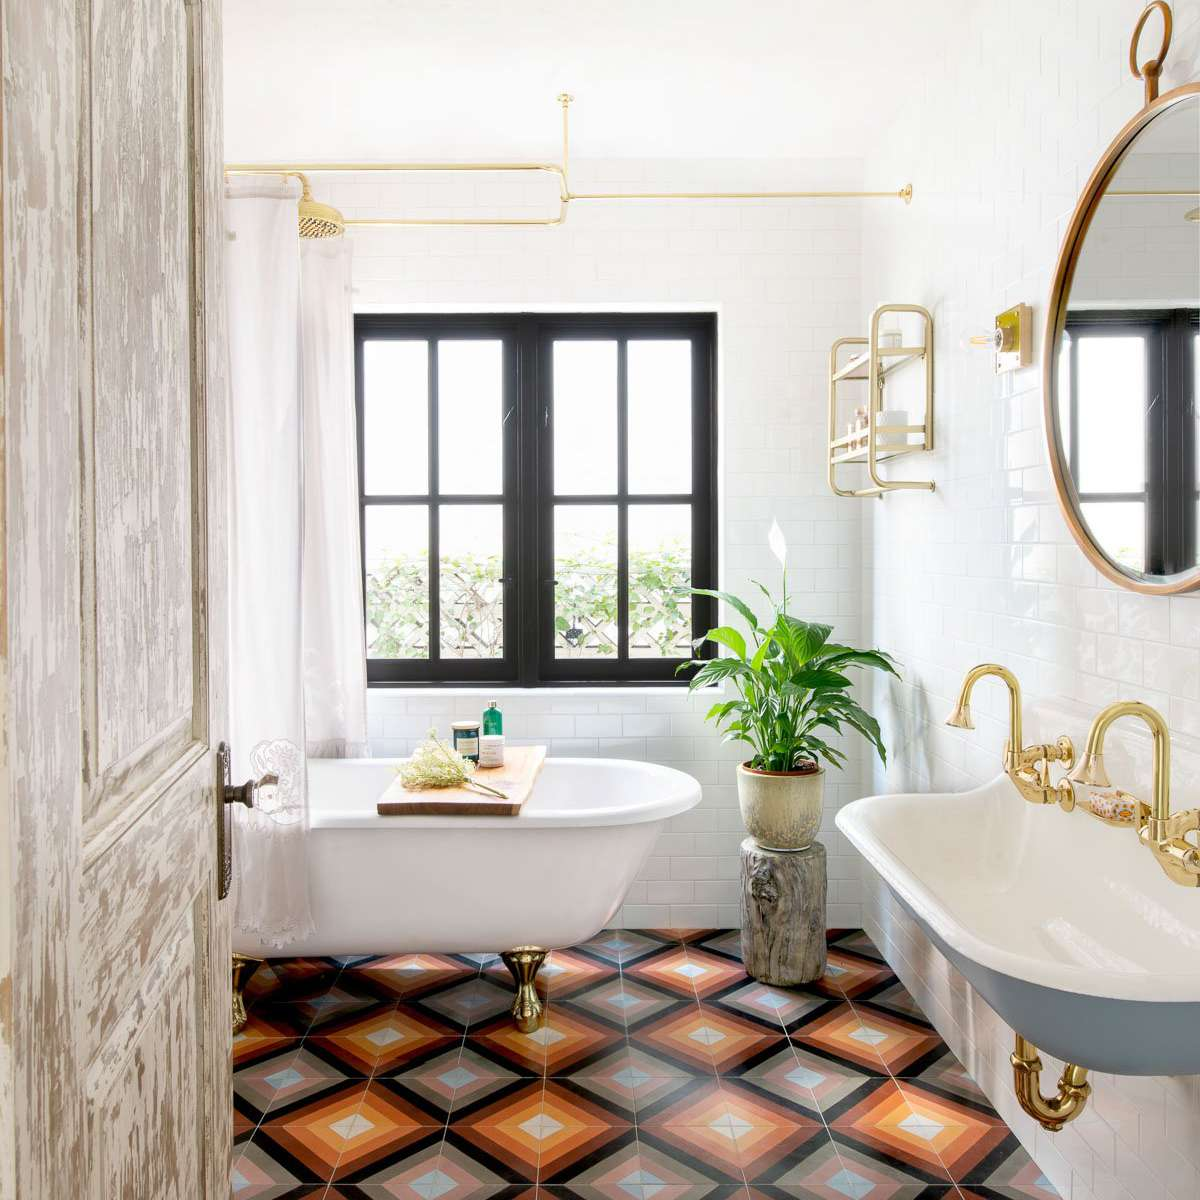 Artsy bathroom with colorful geometric tile and gold accents